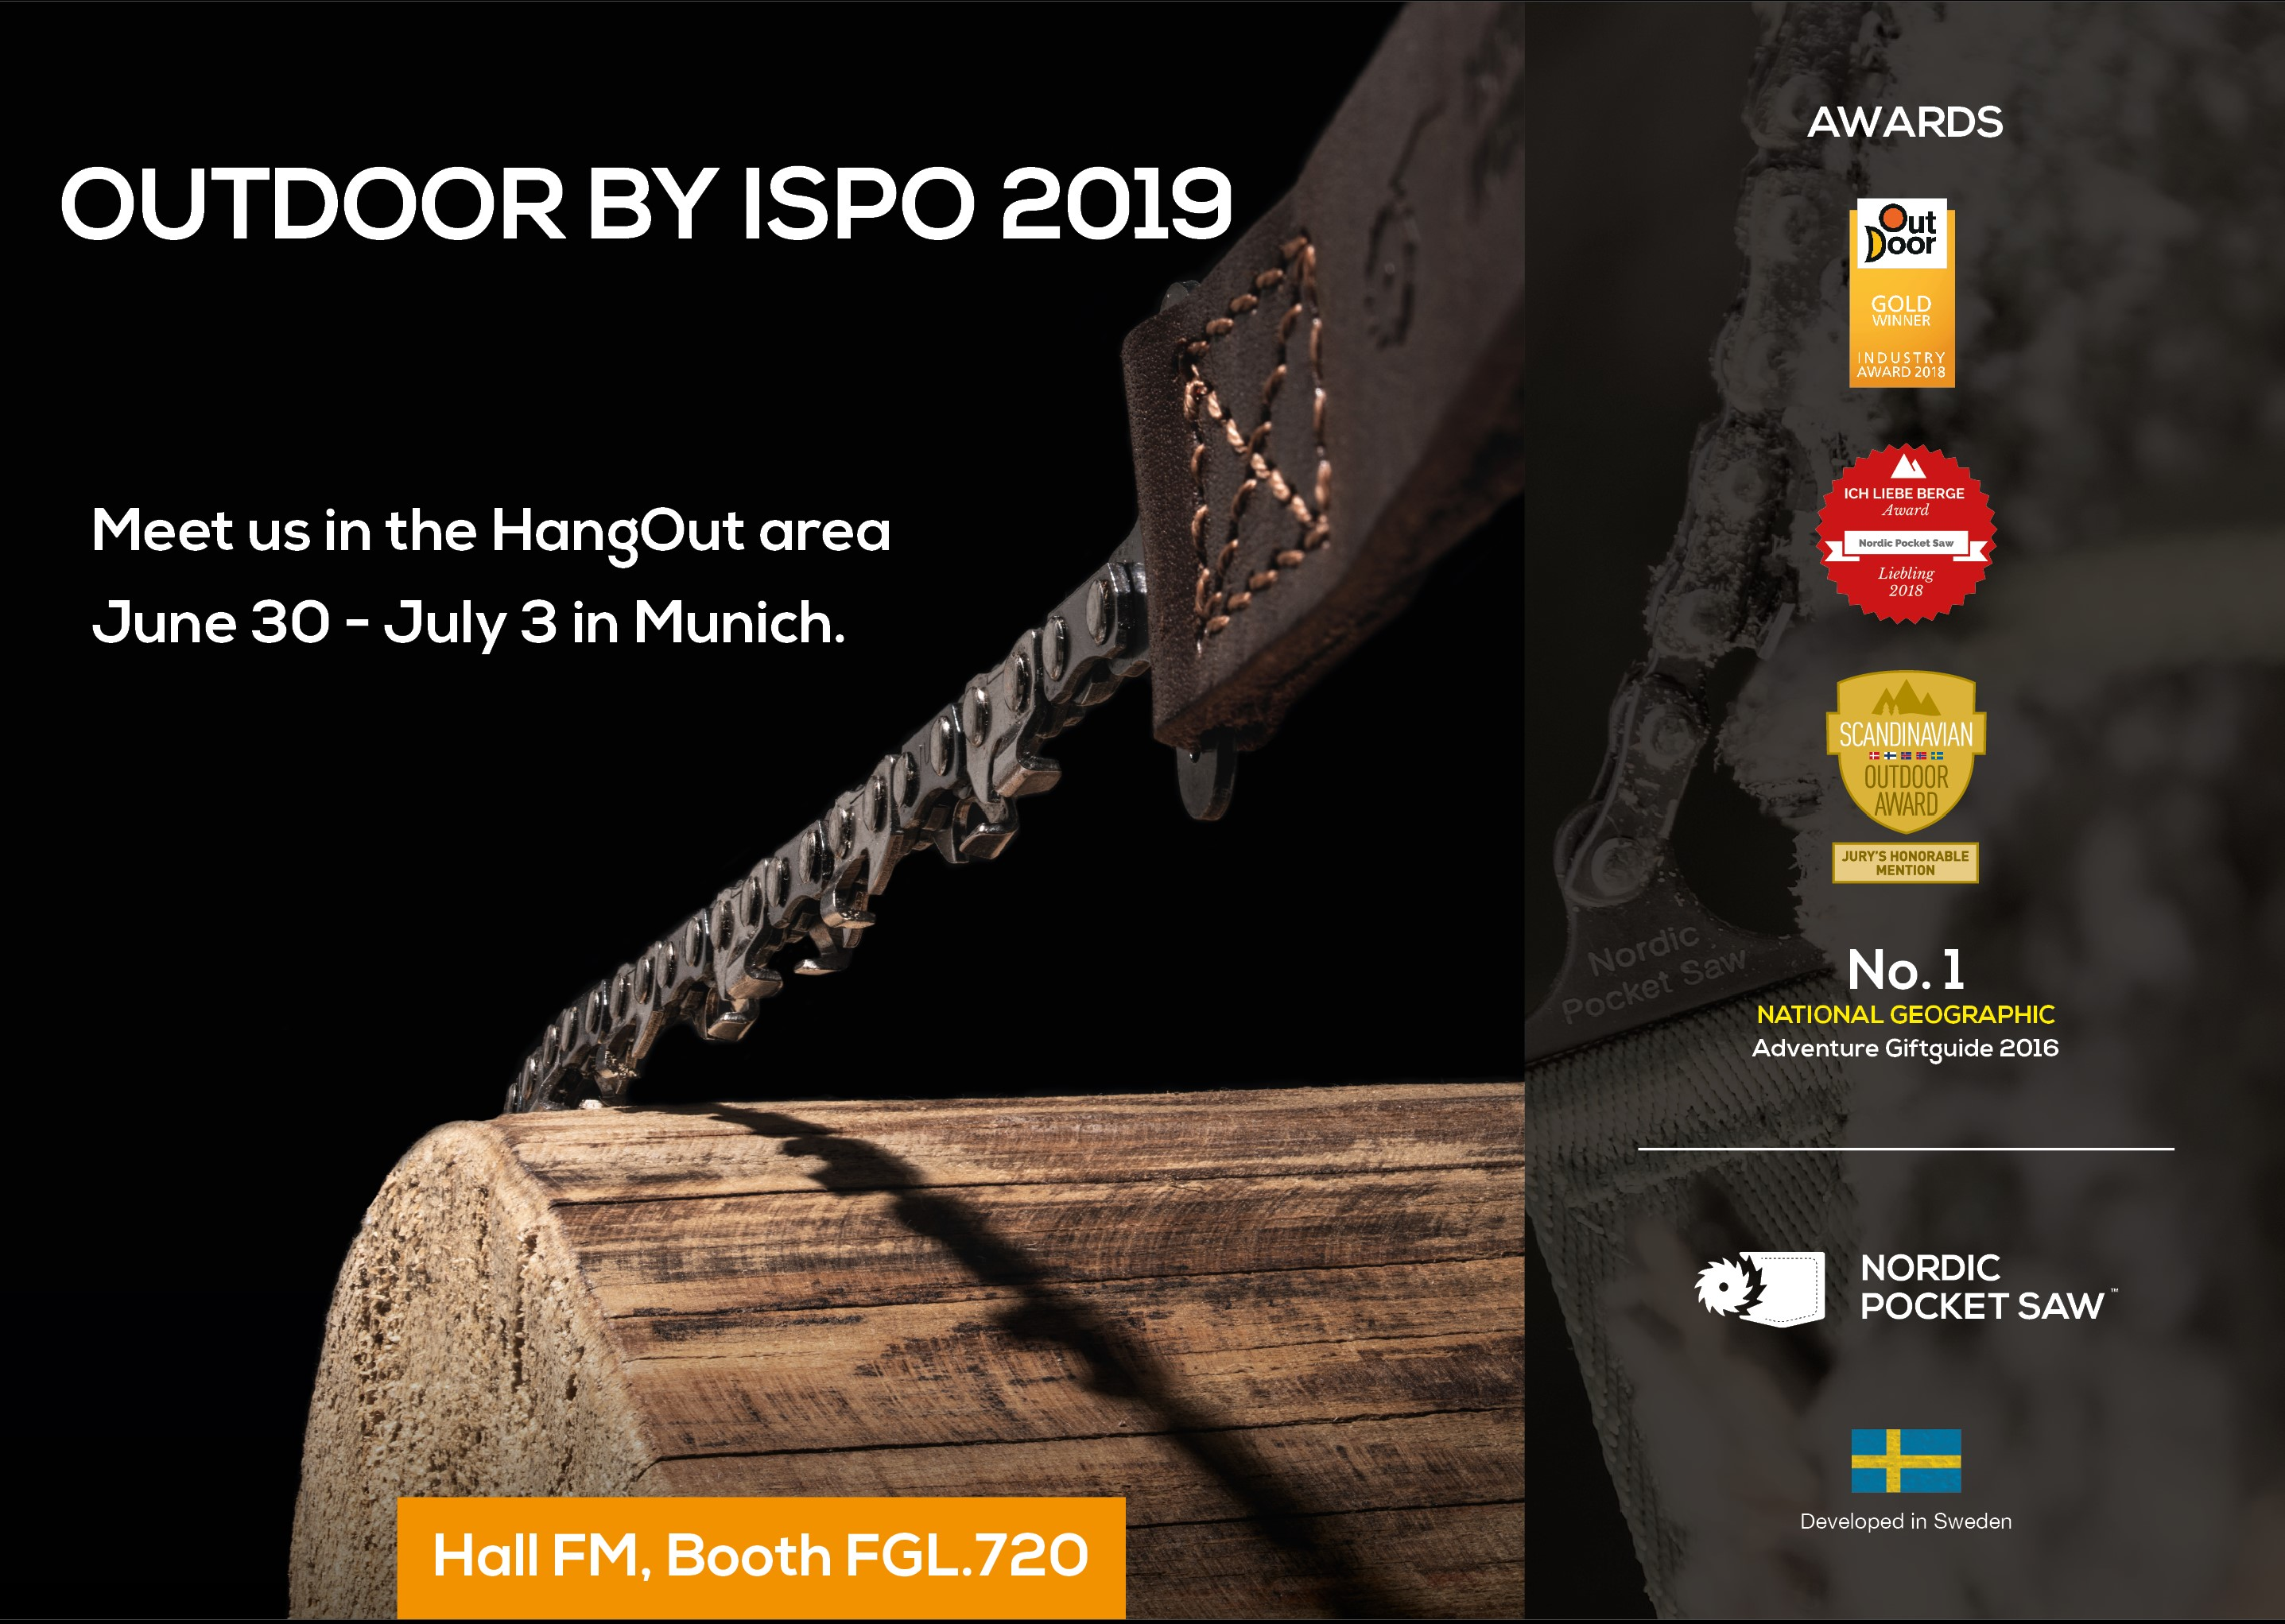 OutDoor by ISPO, Munich, June 30 – July 3, 2019